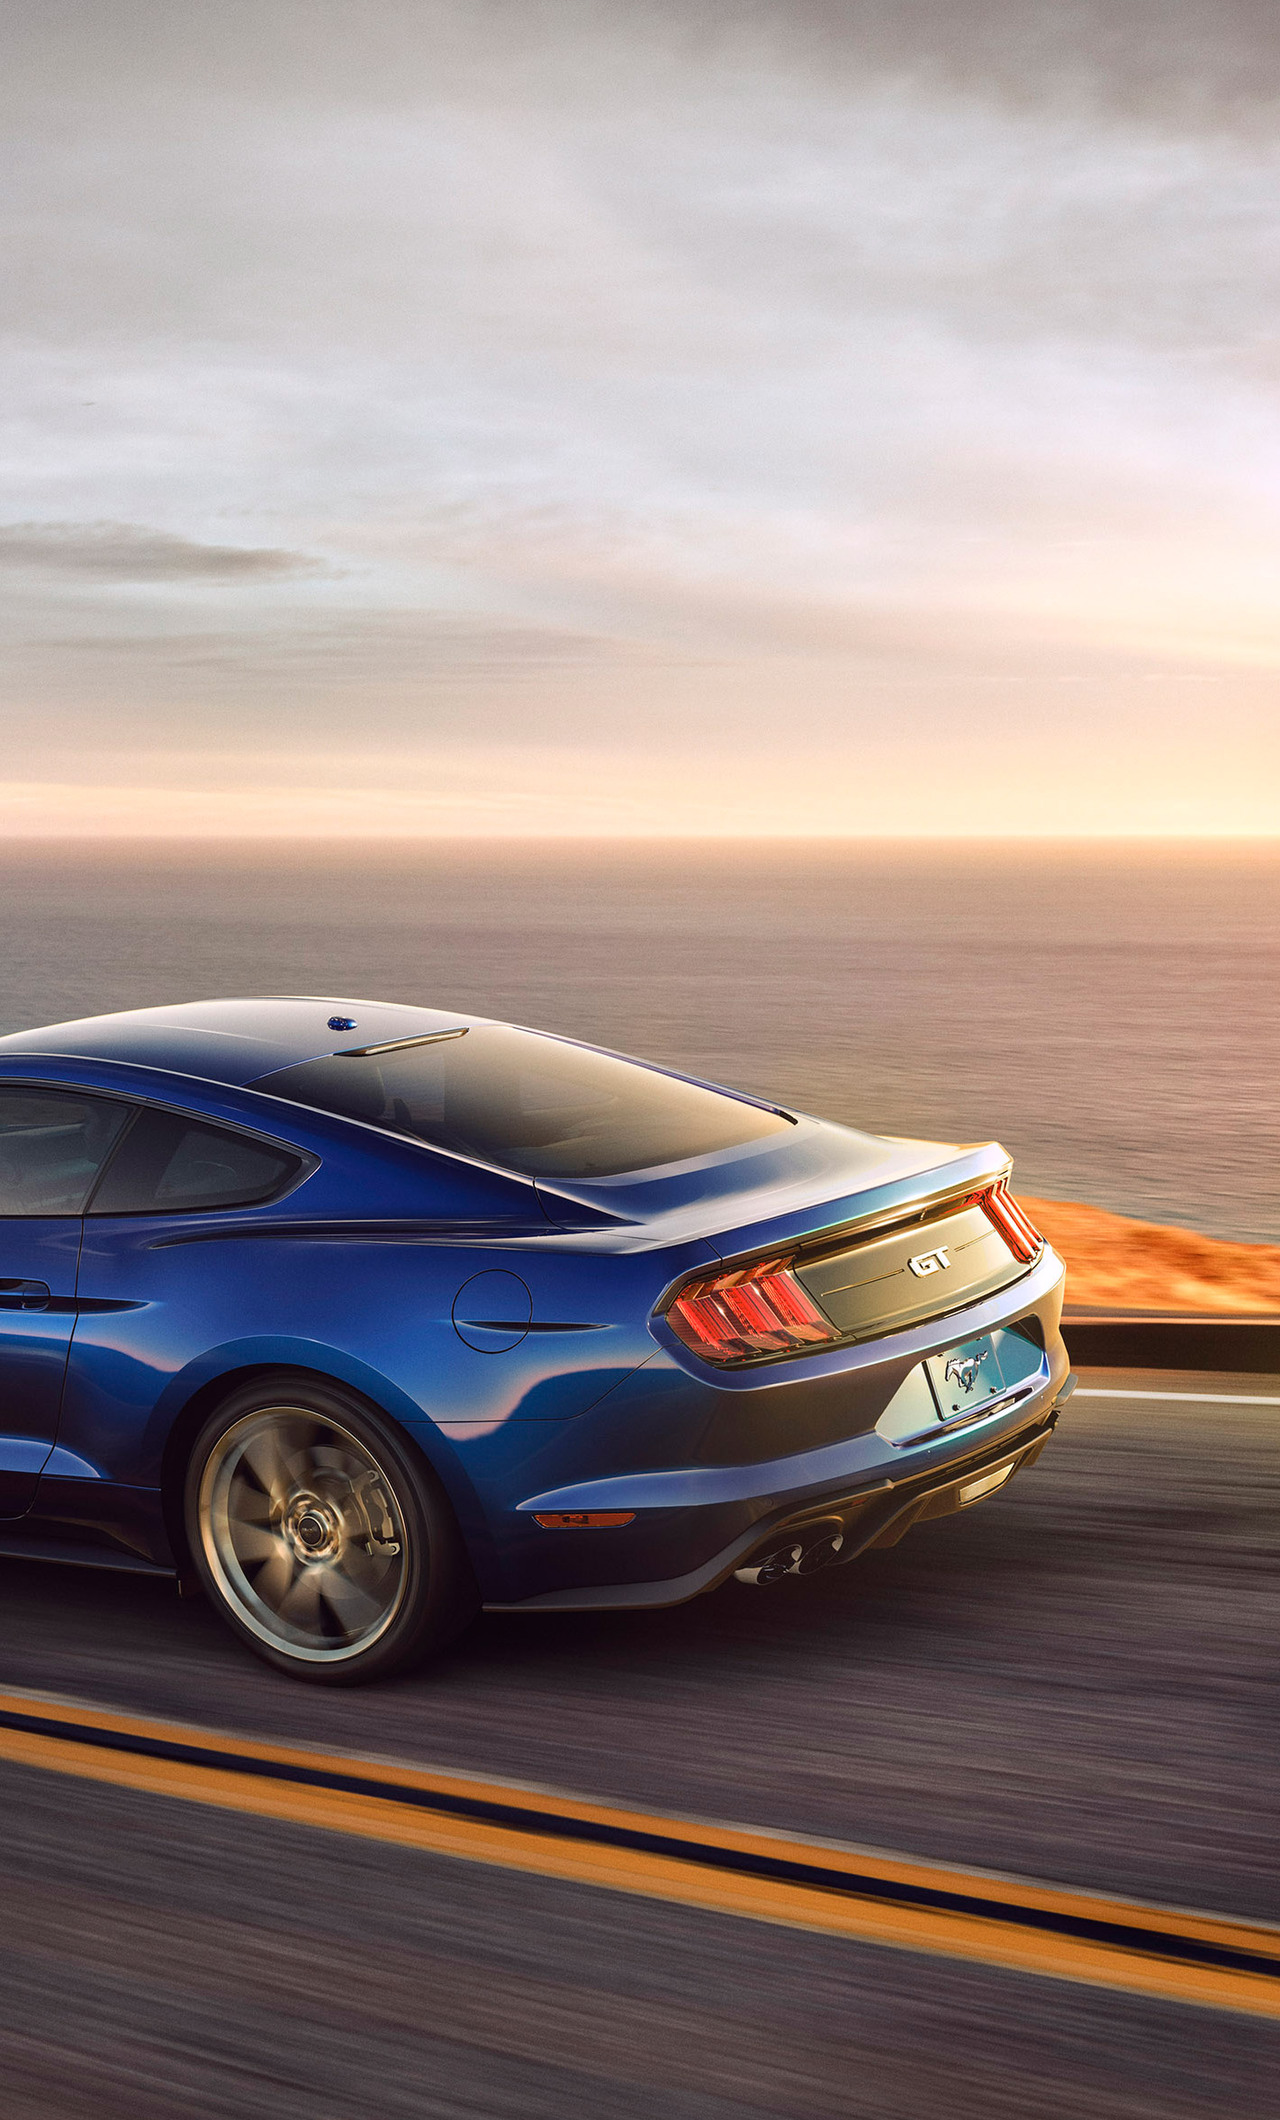 1280x2120 2018 ford mustang v8 gt iphone 6+ hd 4k wallpapers, images